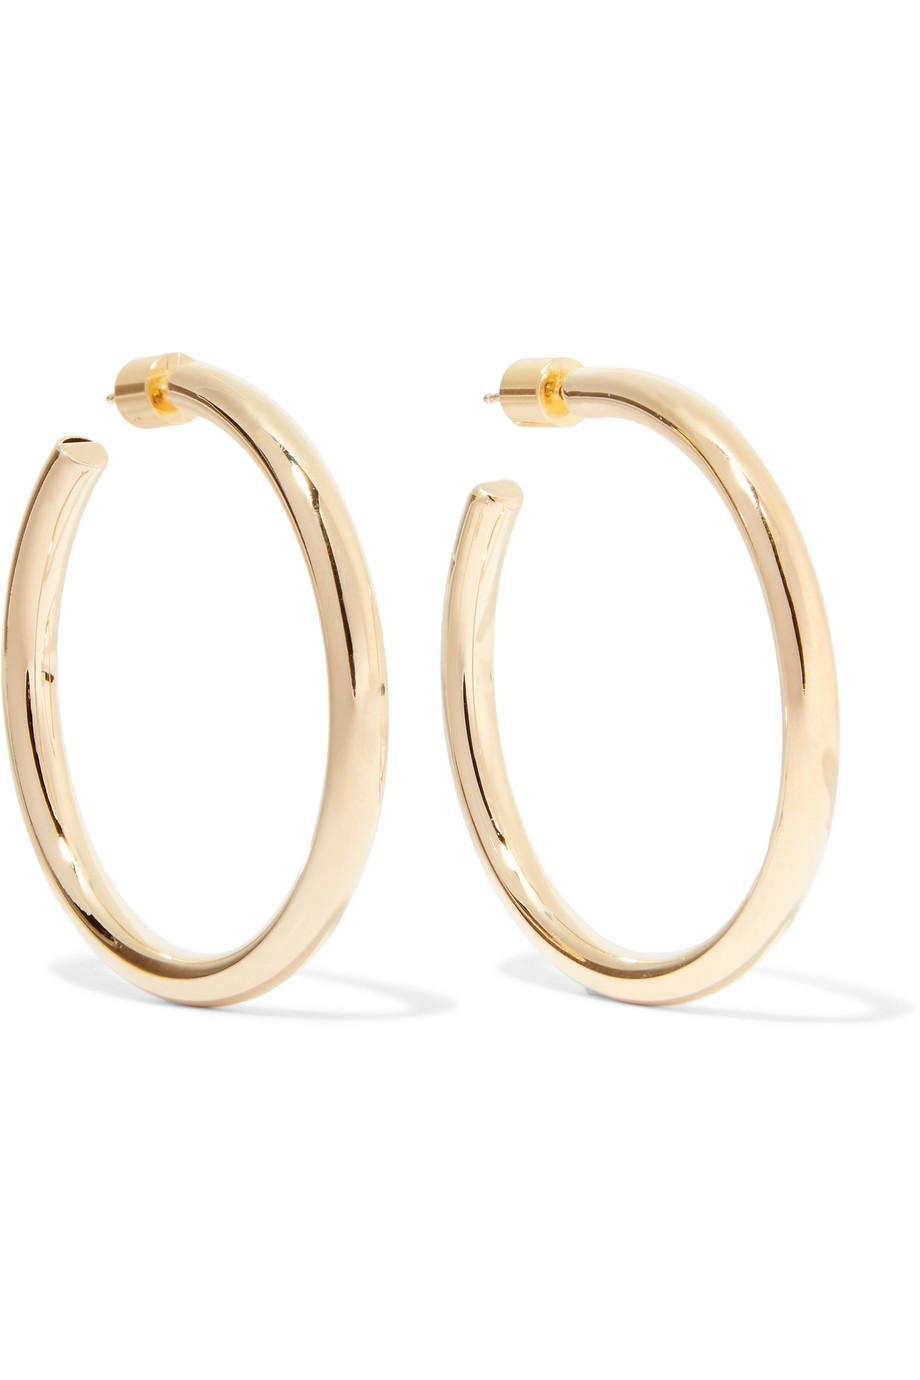 Jennifer Fisher Baby Lilly Hoop Earrings